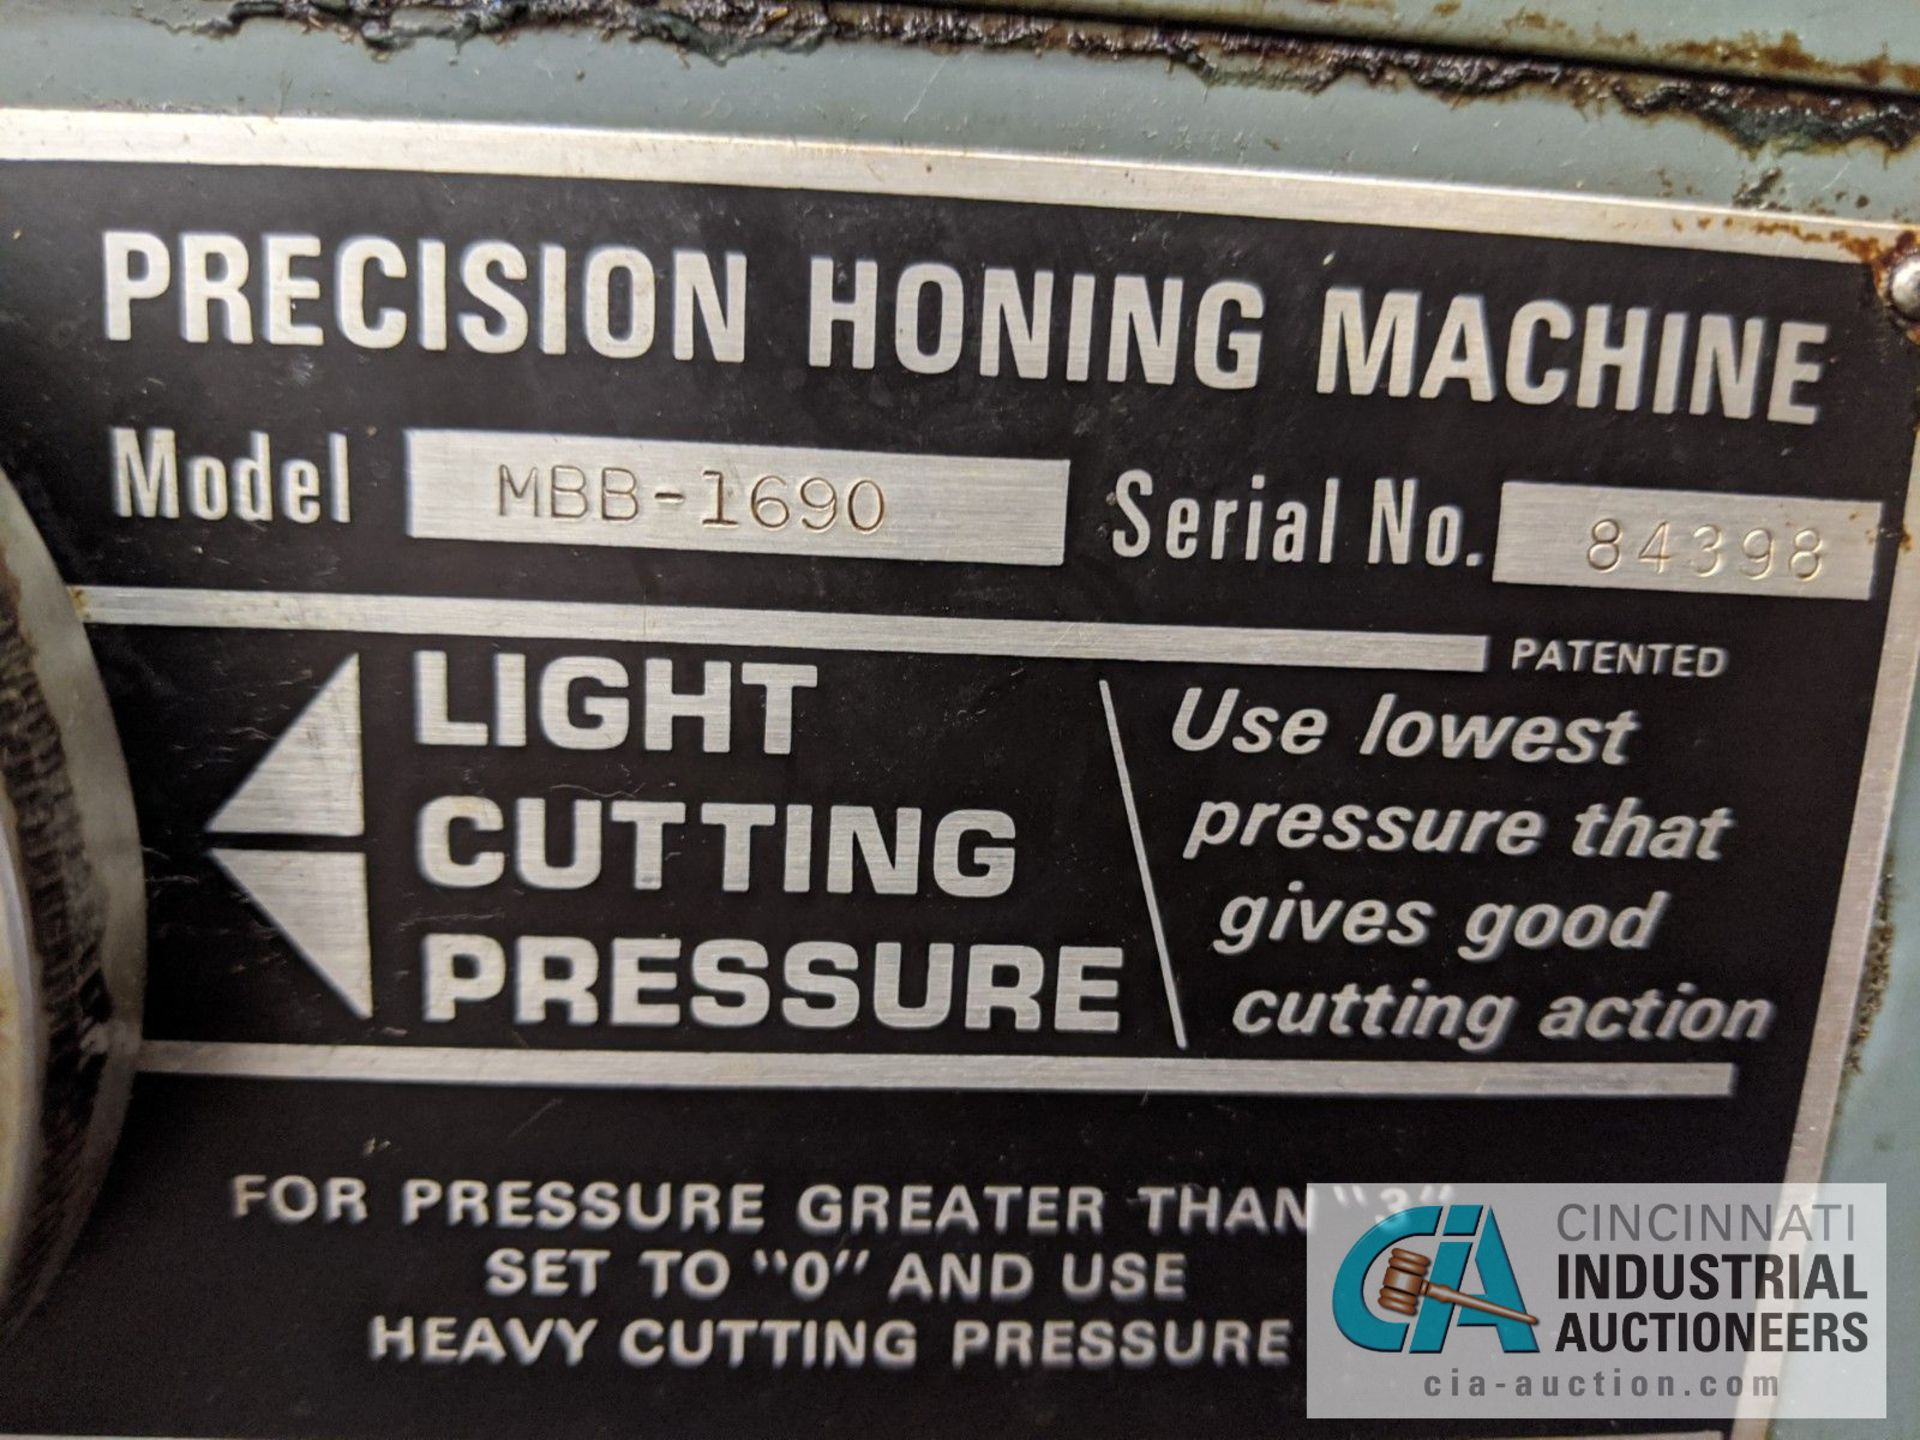 SUNNEN MODEL MBB-1690 PRECISION HONING MACHINE; S/N 84398 - Image 3 of 3